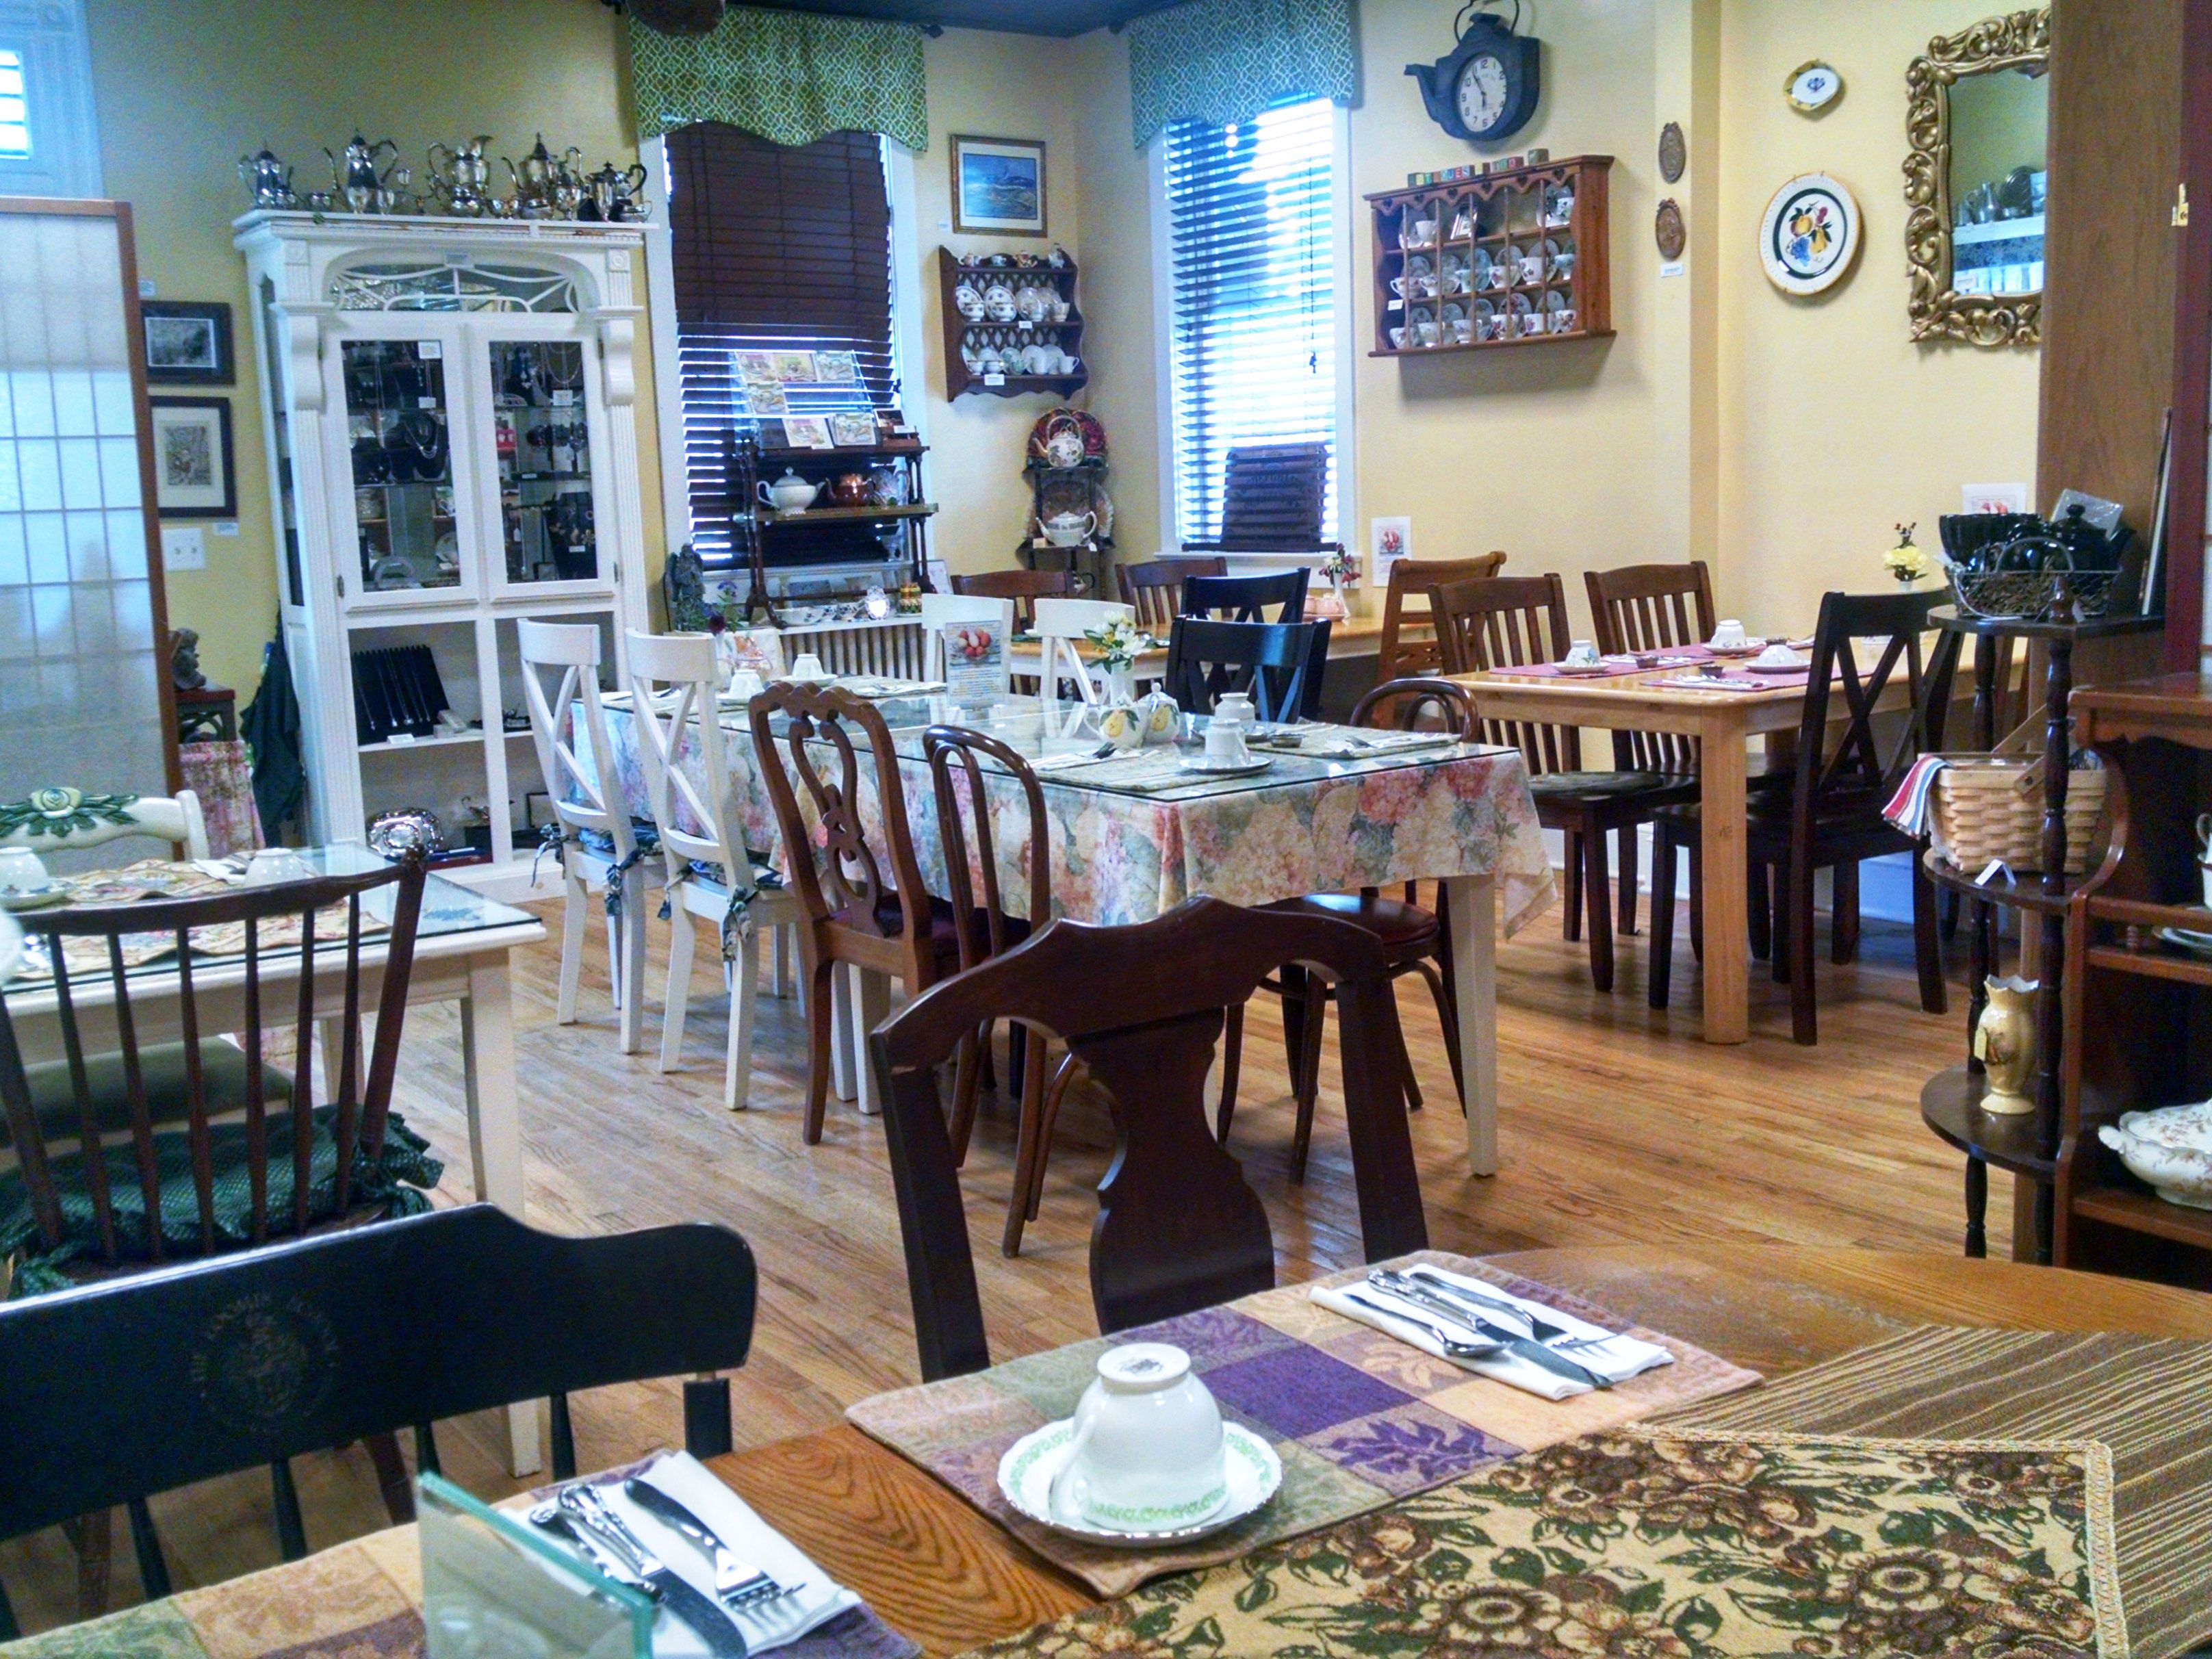 Tea Room Business for Sale image 1